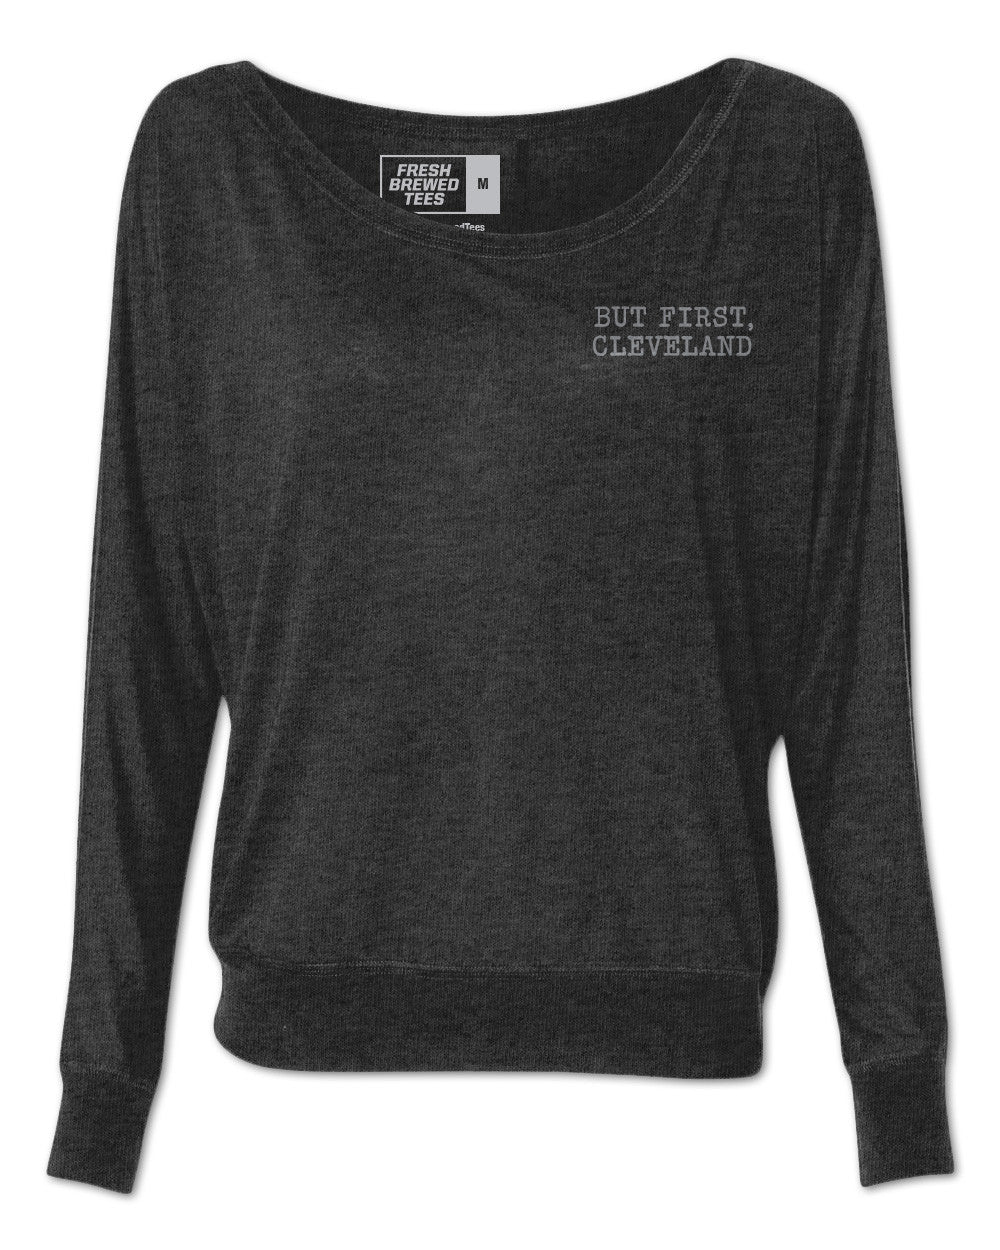 But First, Cleveland Typewriter Ladies Flowy Long Sleeve